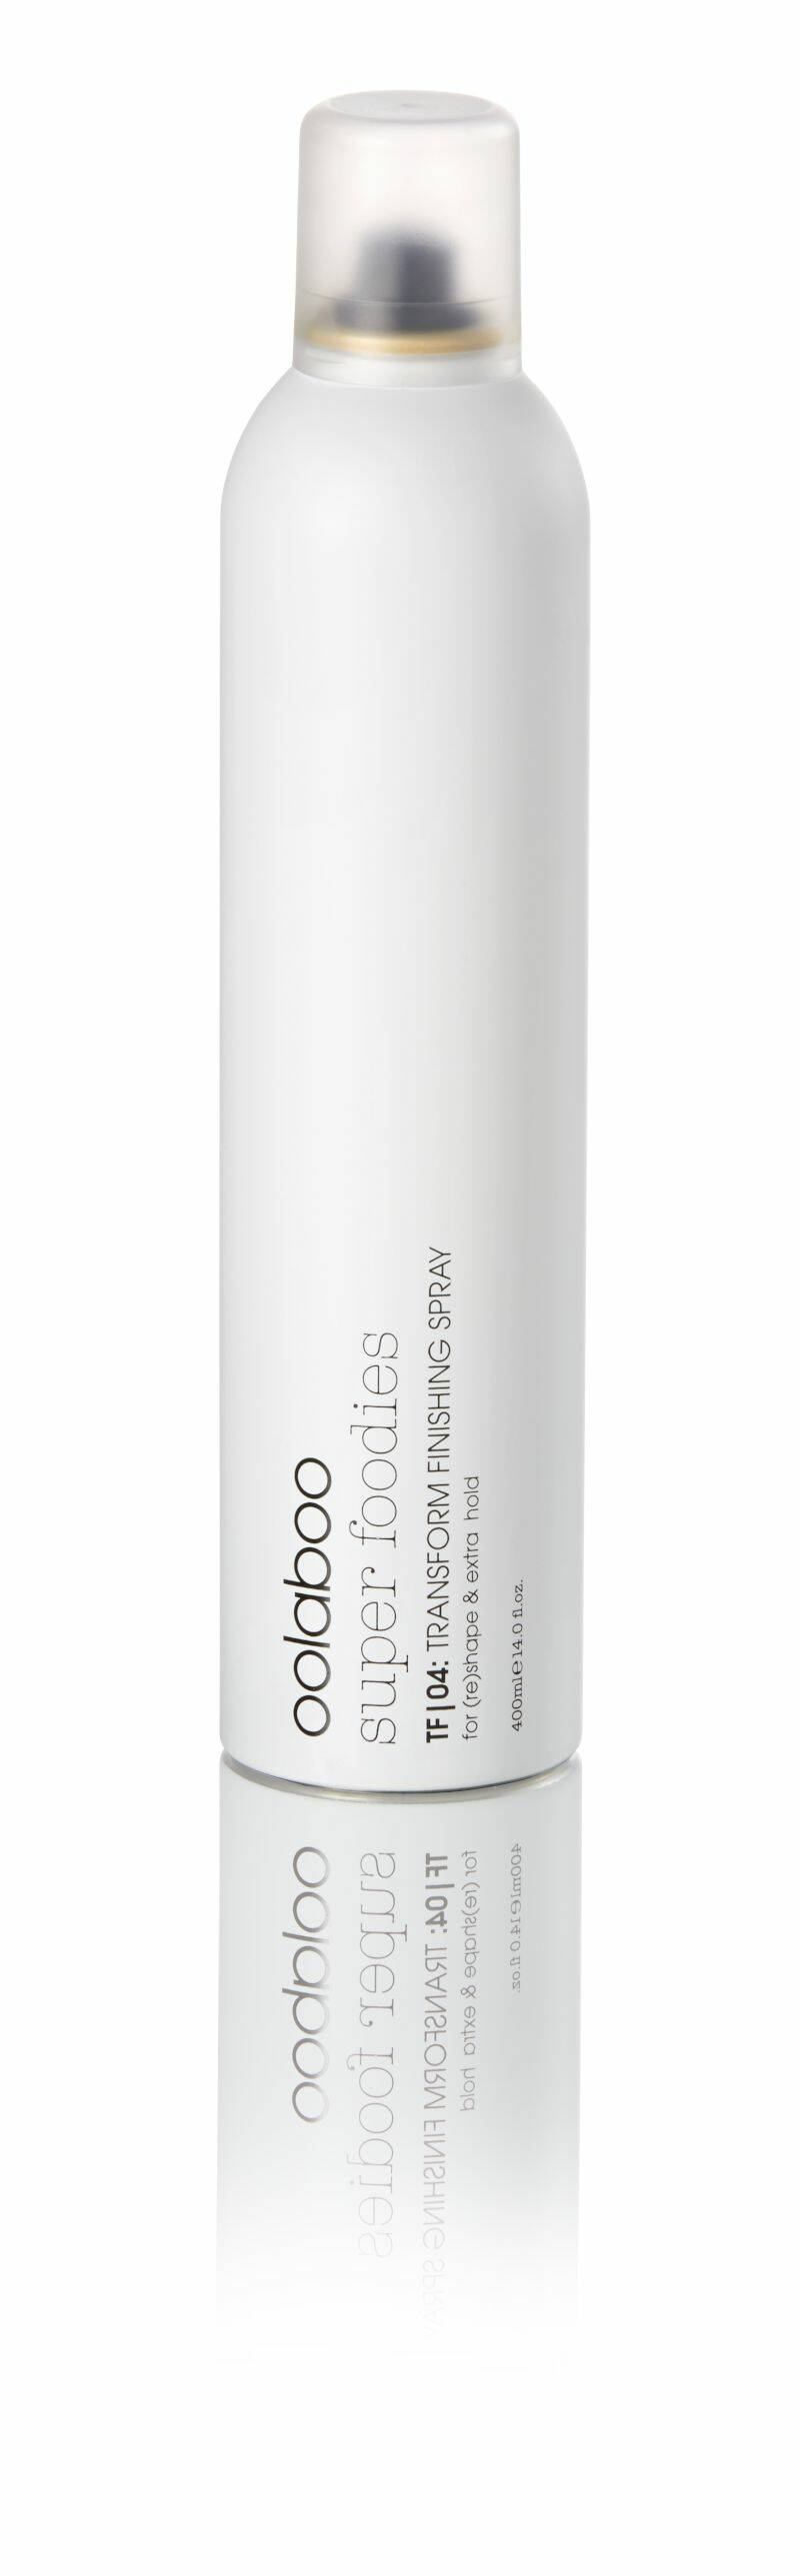 Oolaboo Super Foodies transform finishing spray 400 ml